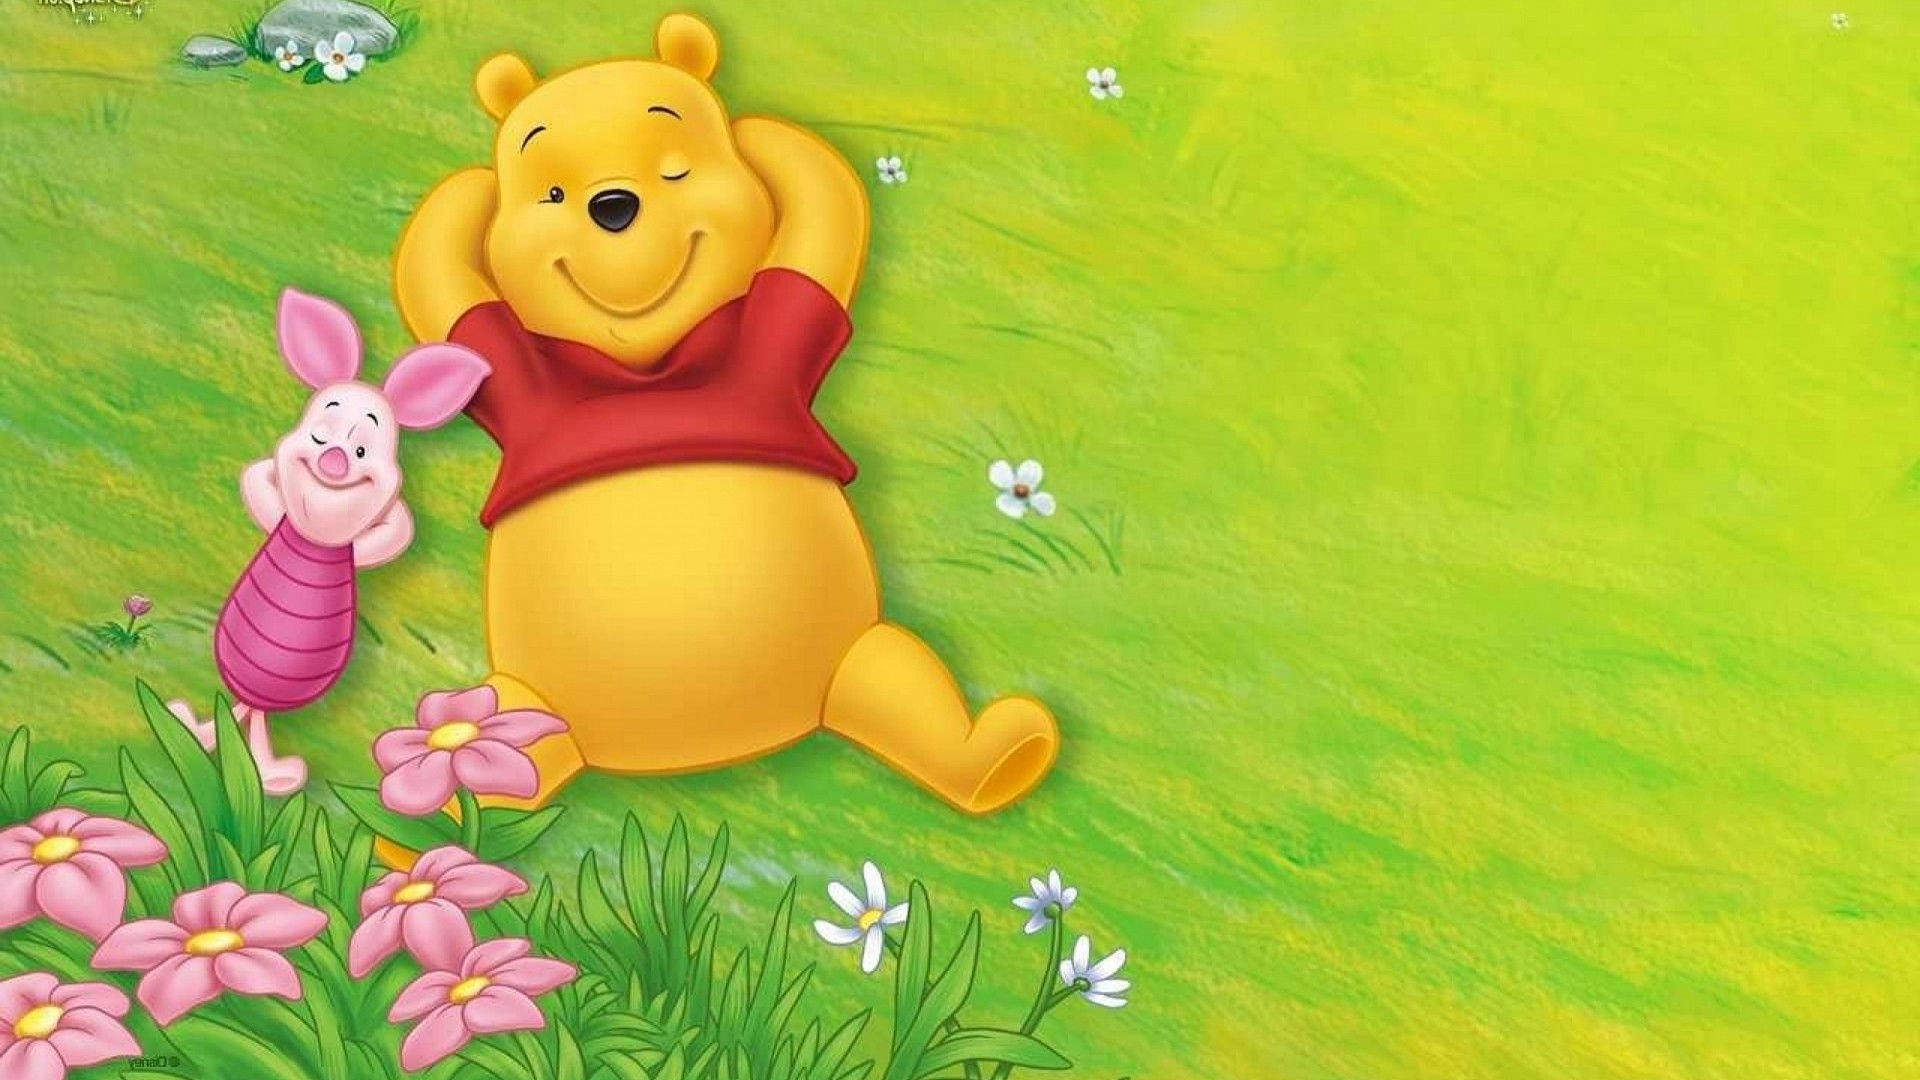 Download Winnie the Pooh Background Finest Anime Christmas Wallpaper In  Many Resolutions